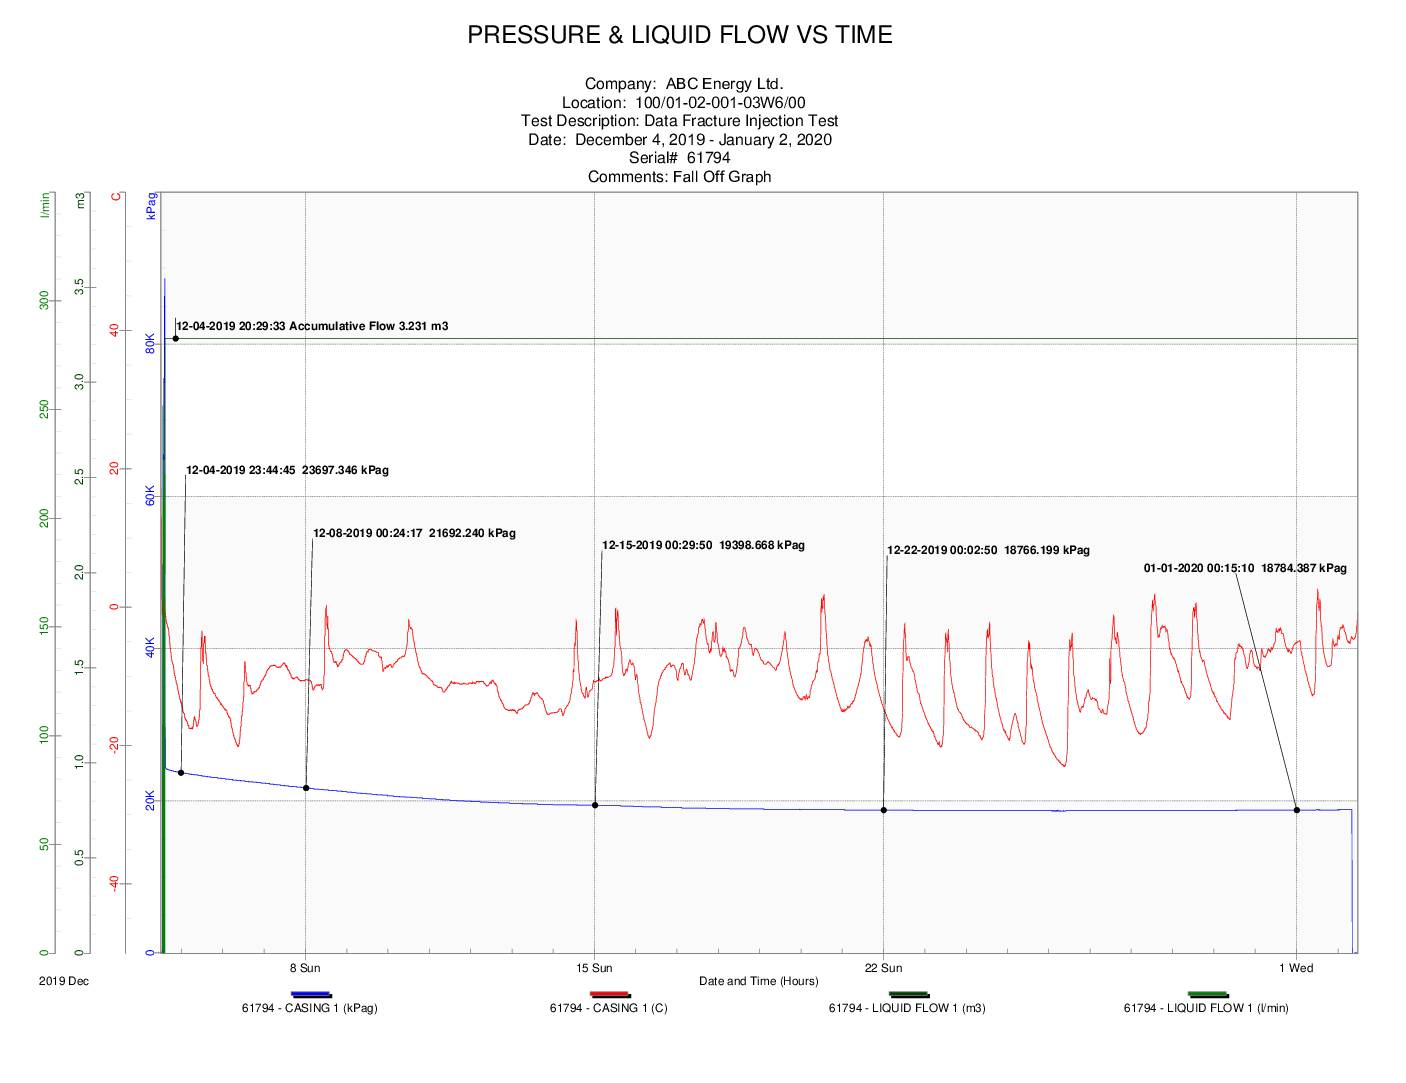 Data Fracture Injection Test Example Graph 1